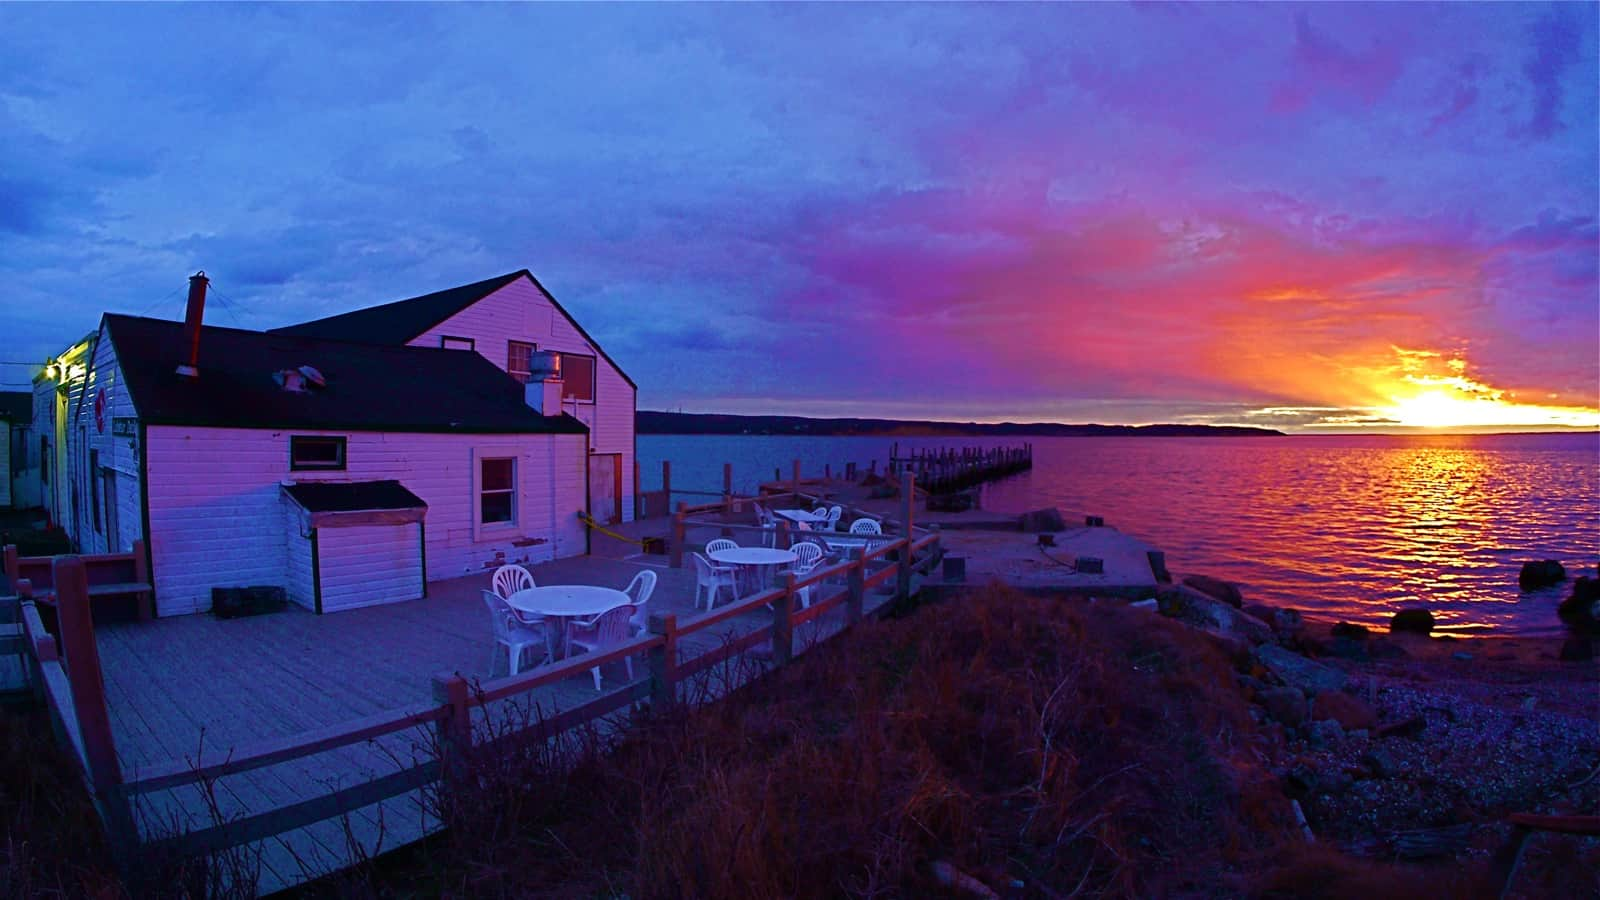 Sunset over Fort Pond Bay as seen from Duryea's Lobster, March 28 2013, Montauk NY, photo by Sailing Montauk